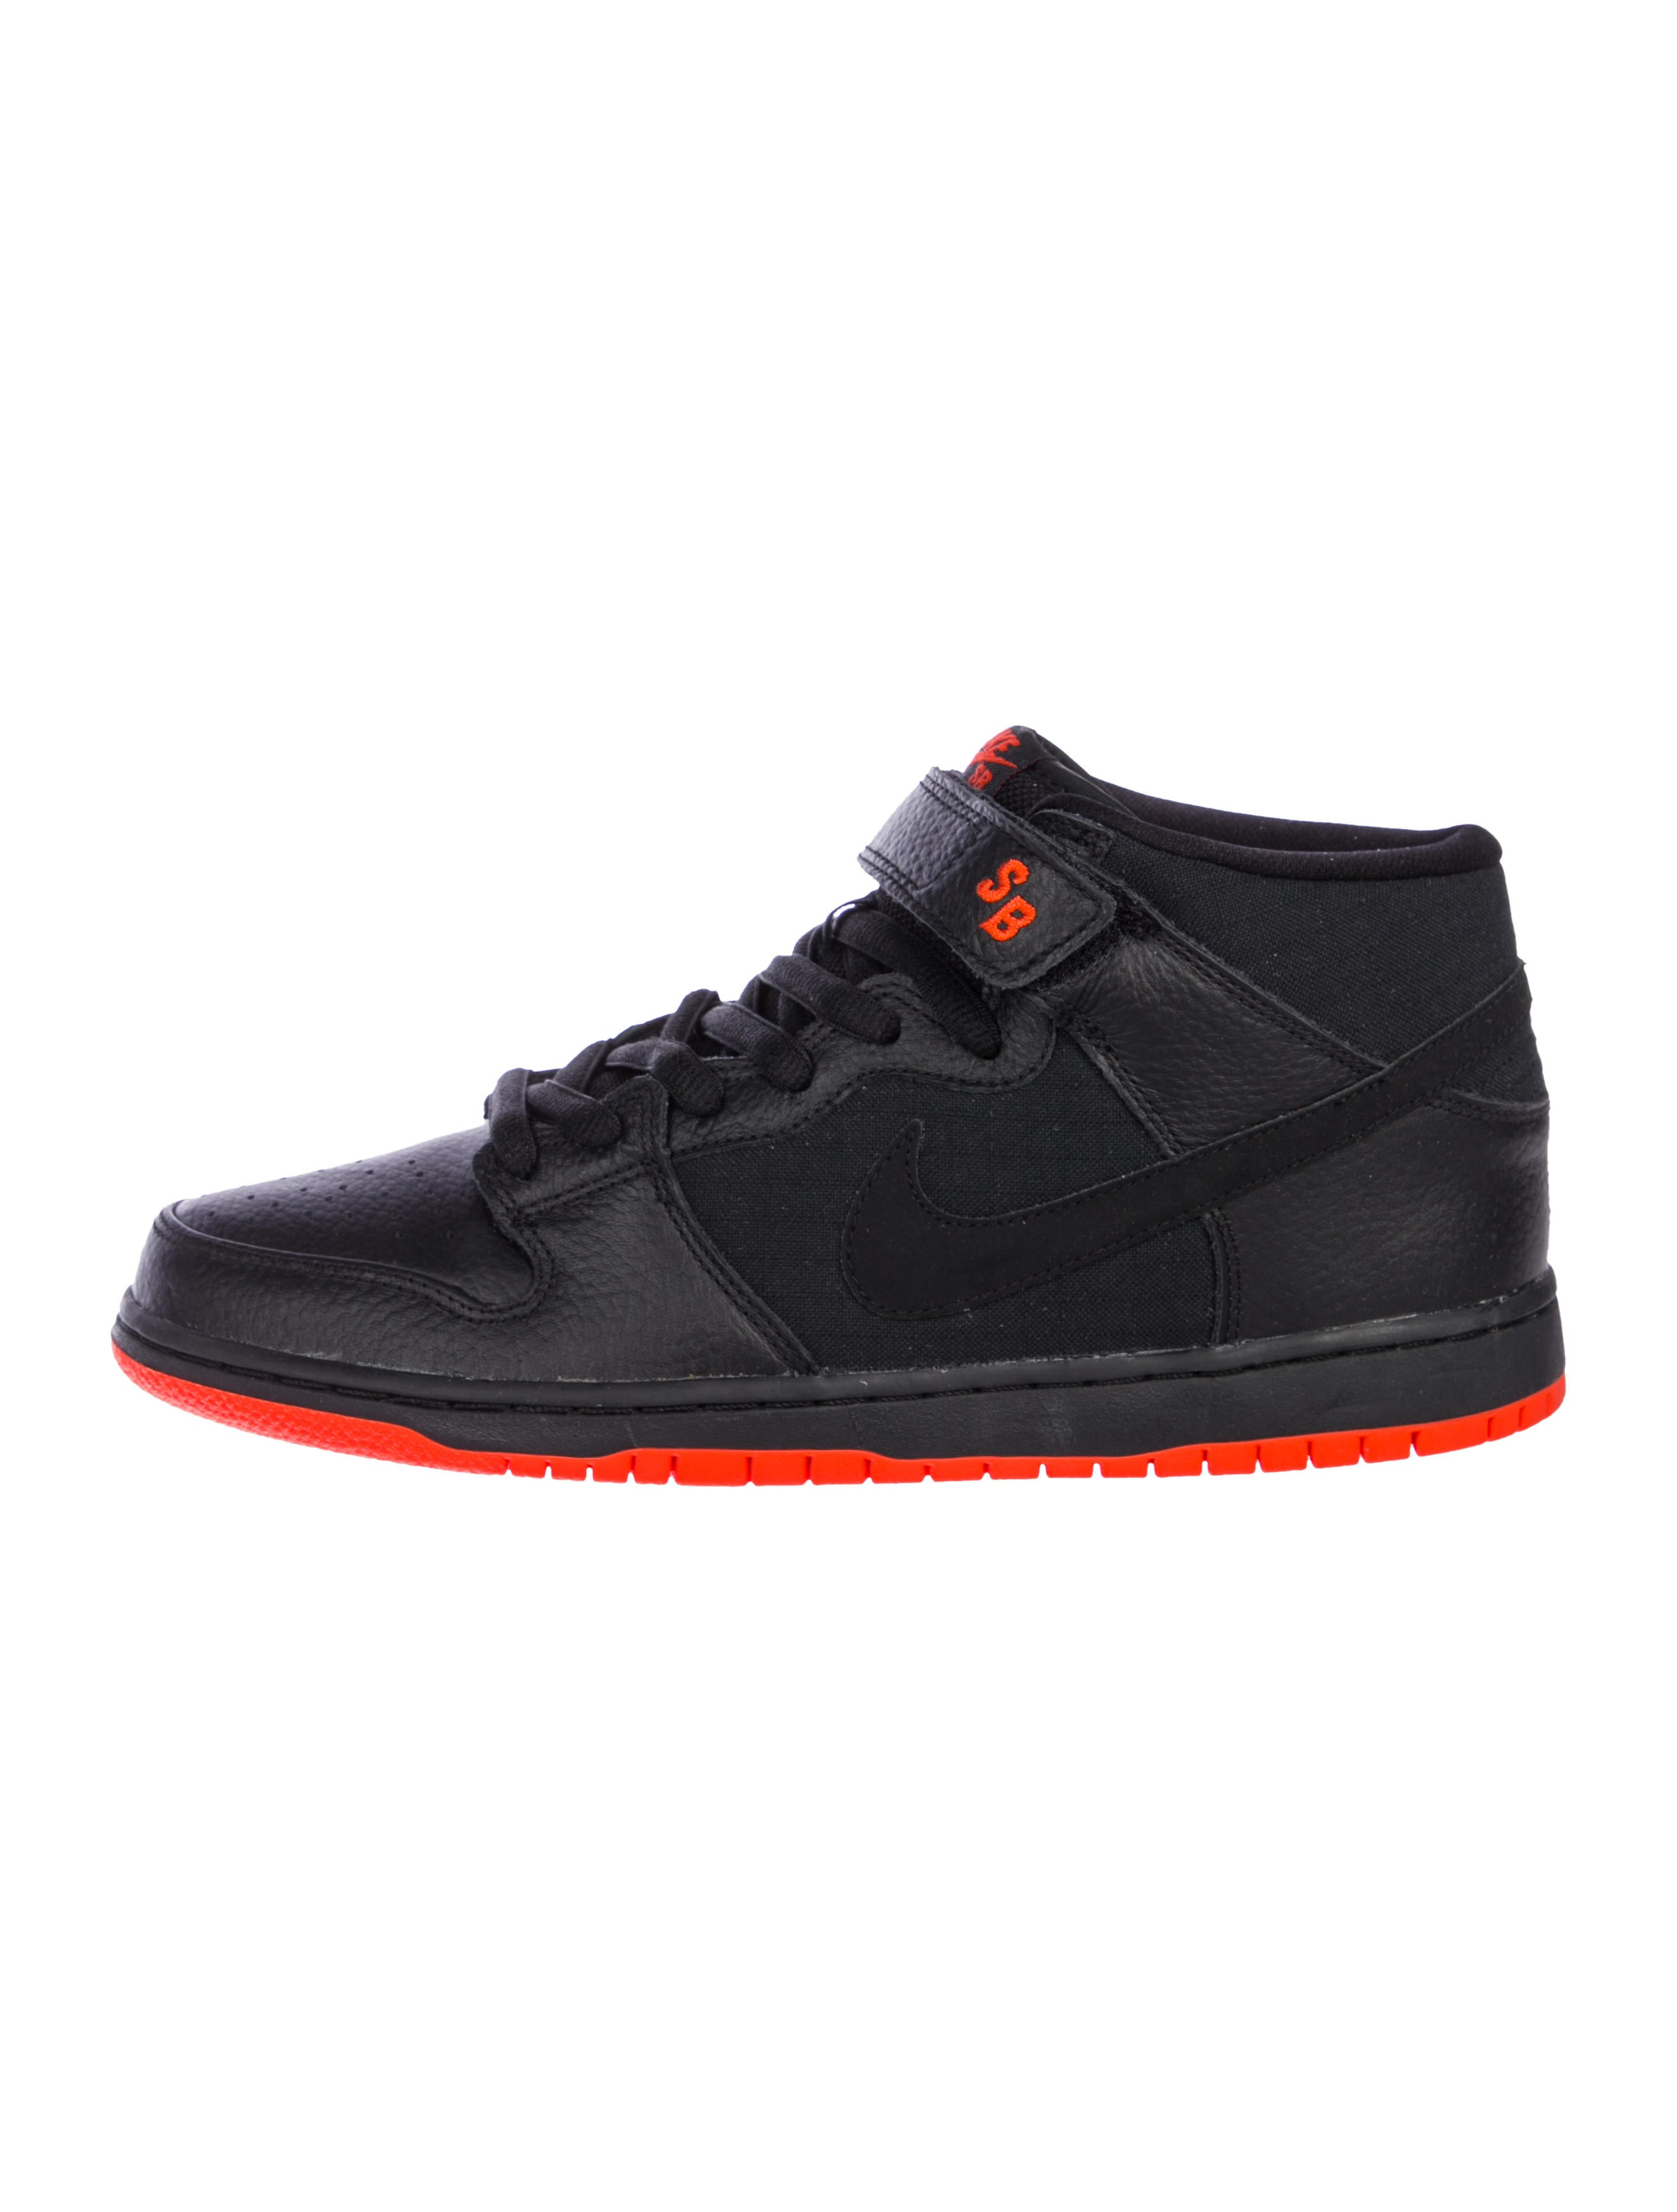 the best attitude 211e1 95f01 Dunk MID Pro SB Halloween Sneakers w/ Tags